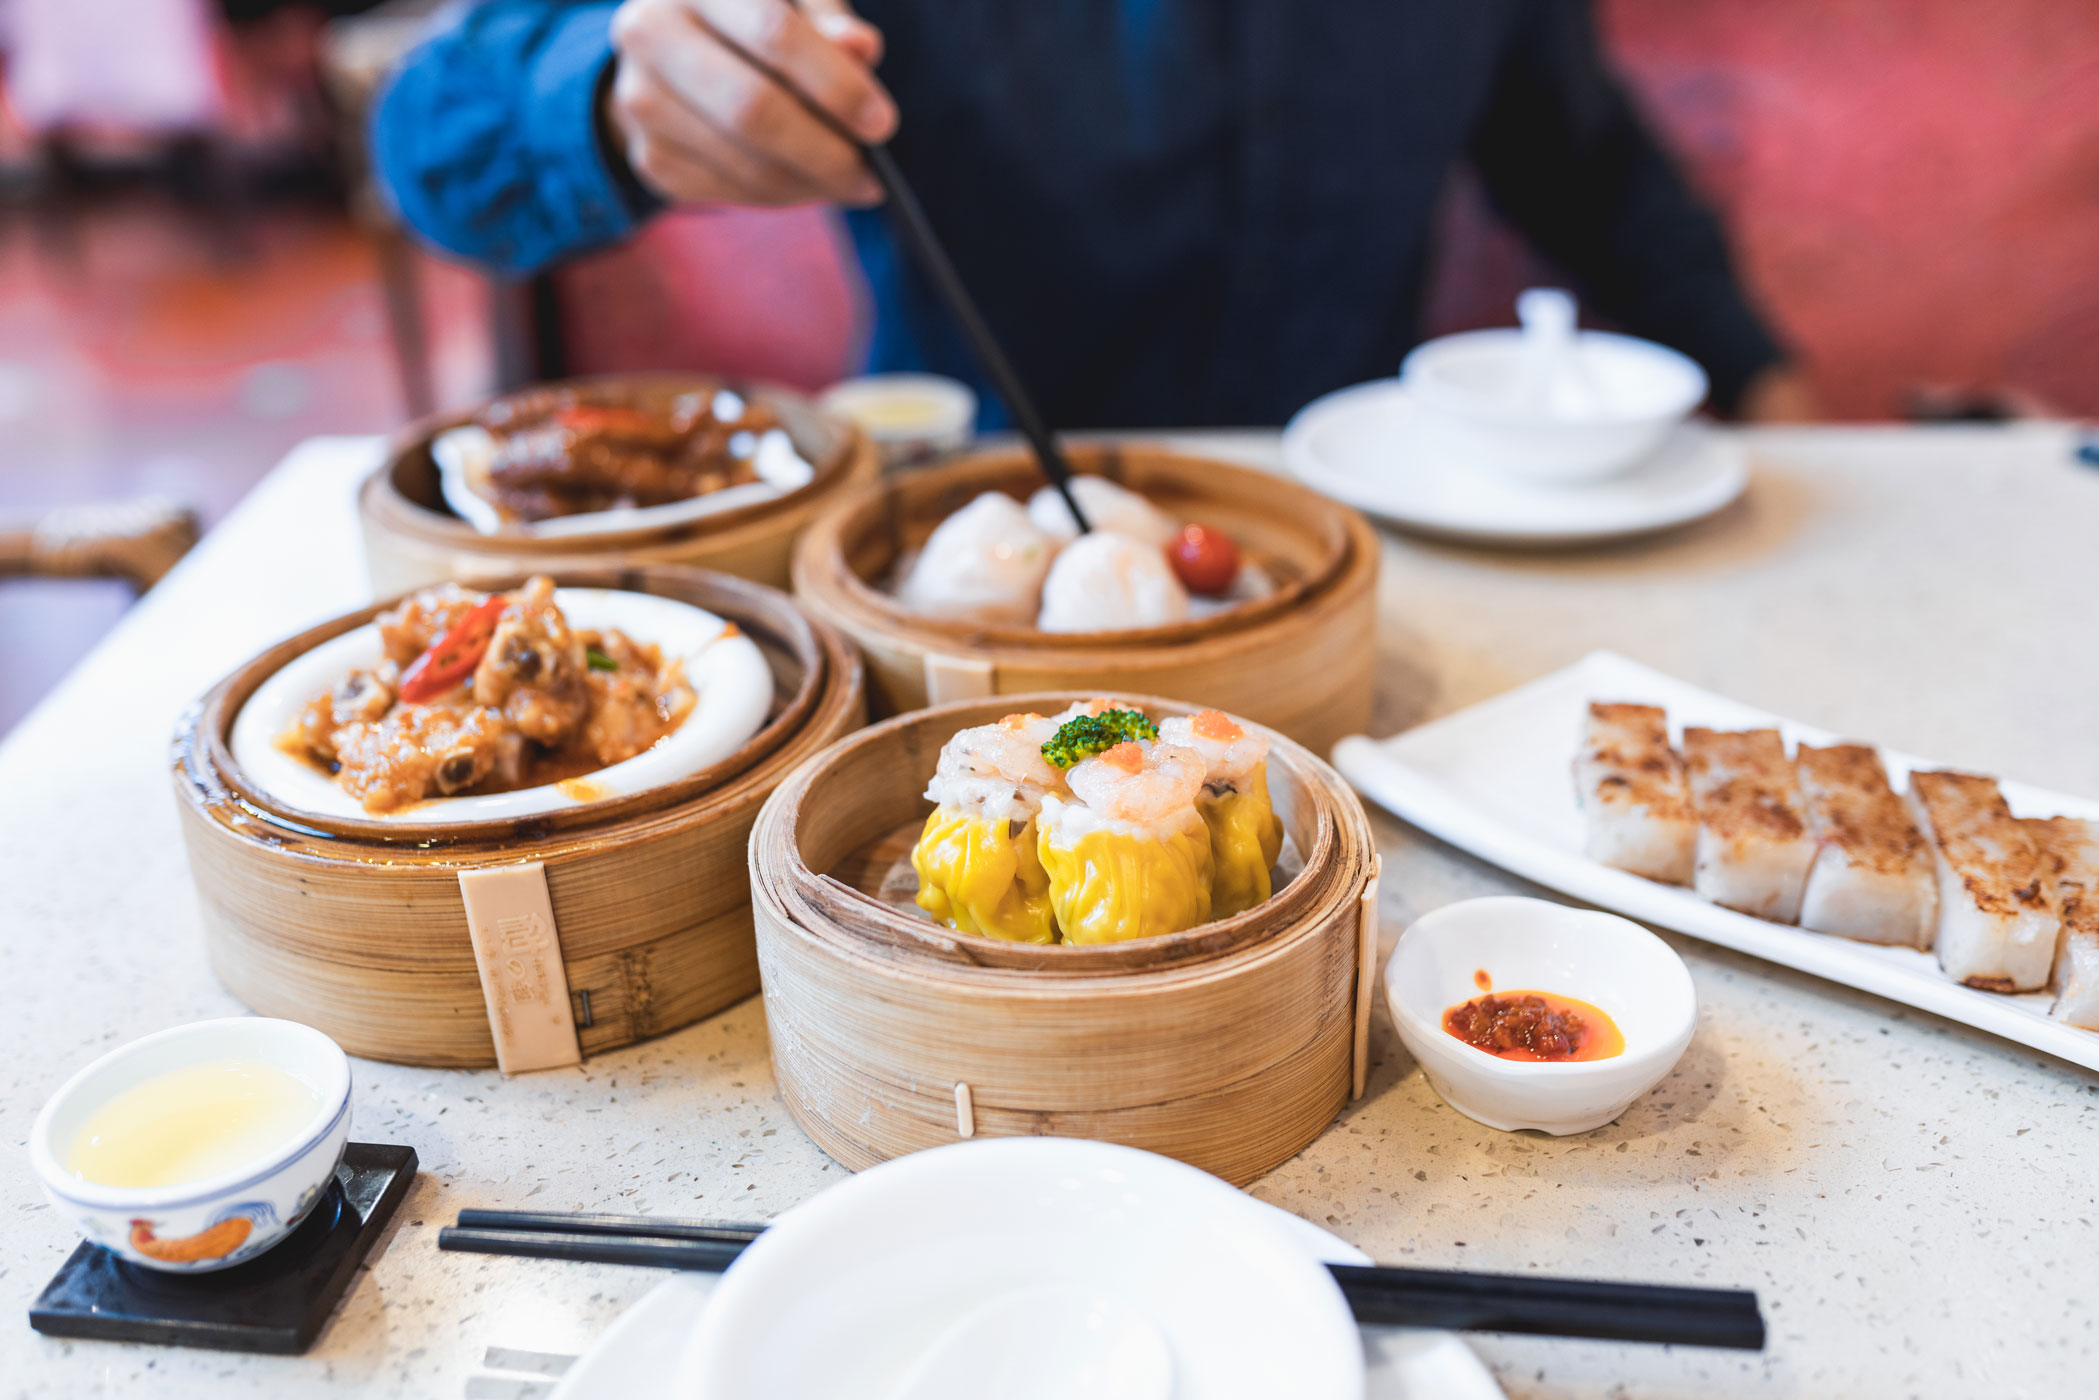 A person enjoying lavish dishes of dim sum with another person.